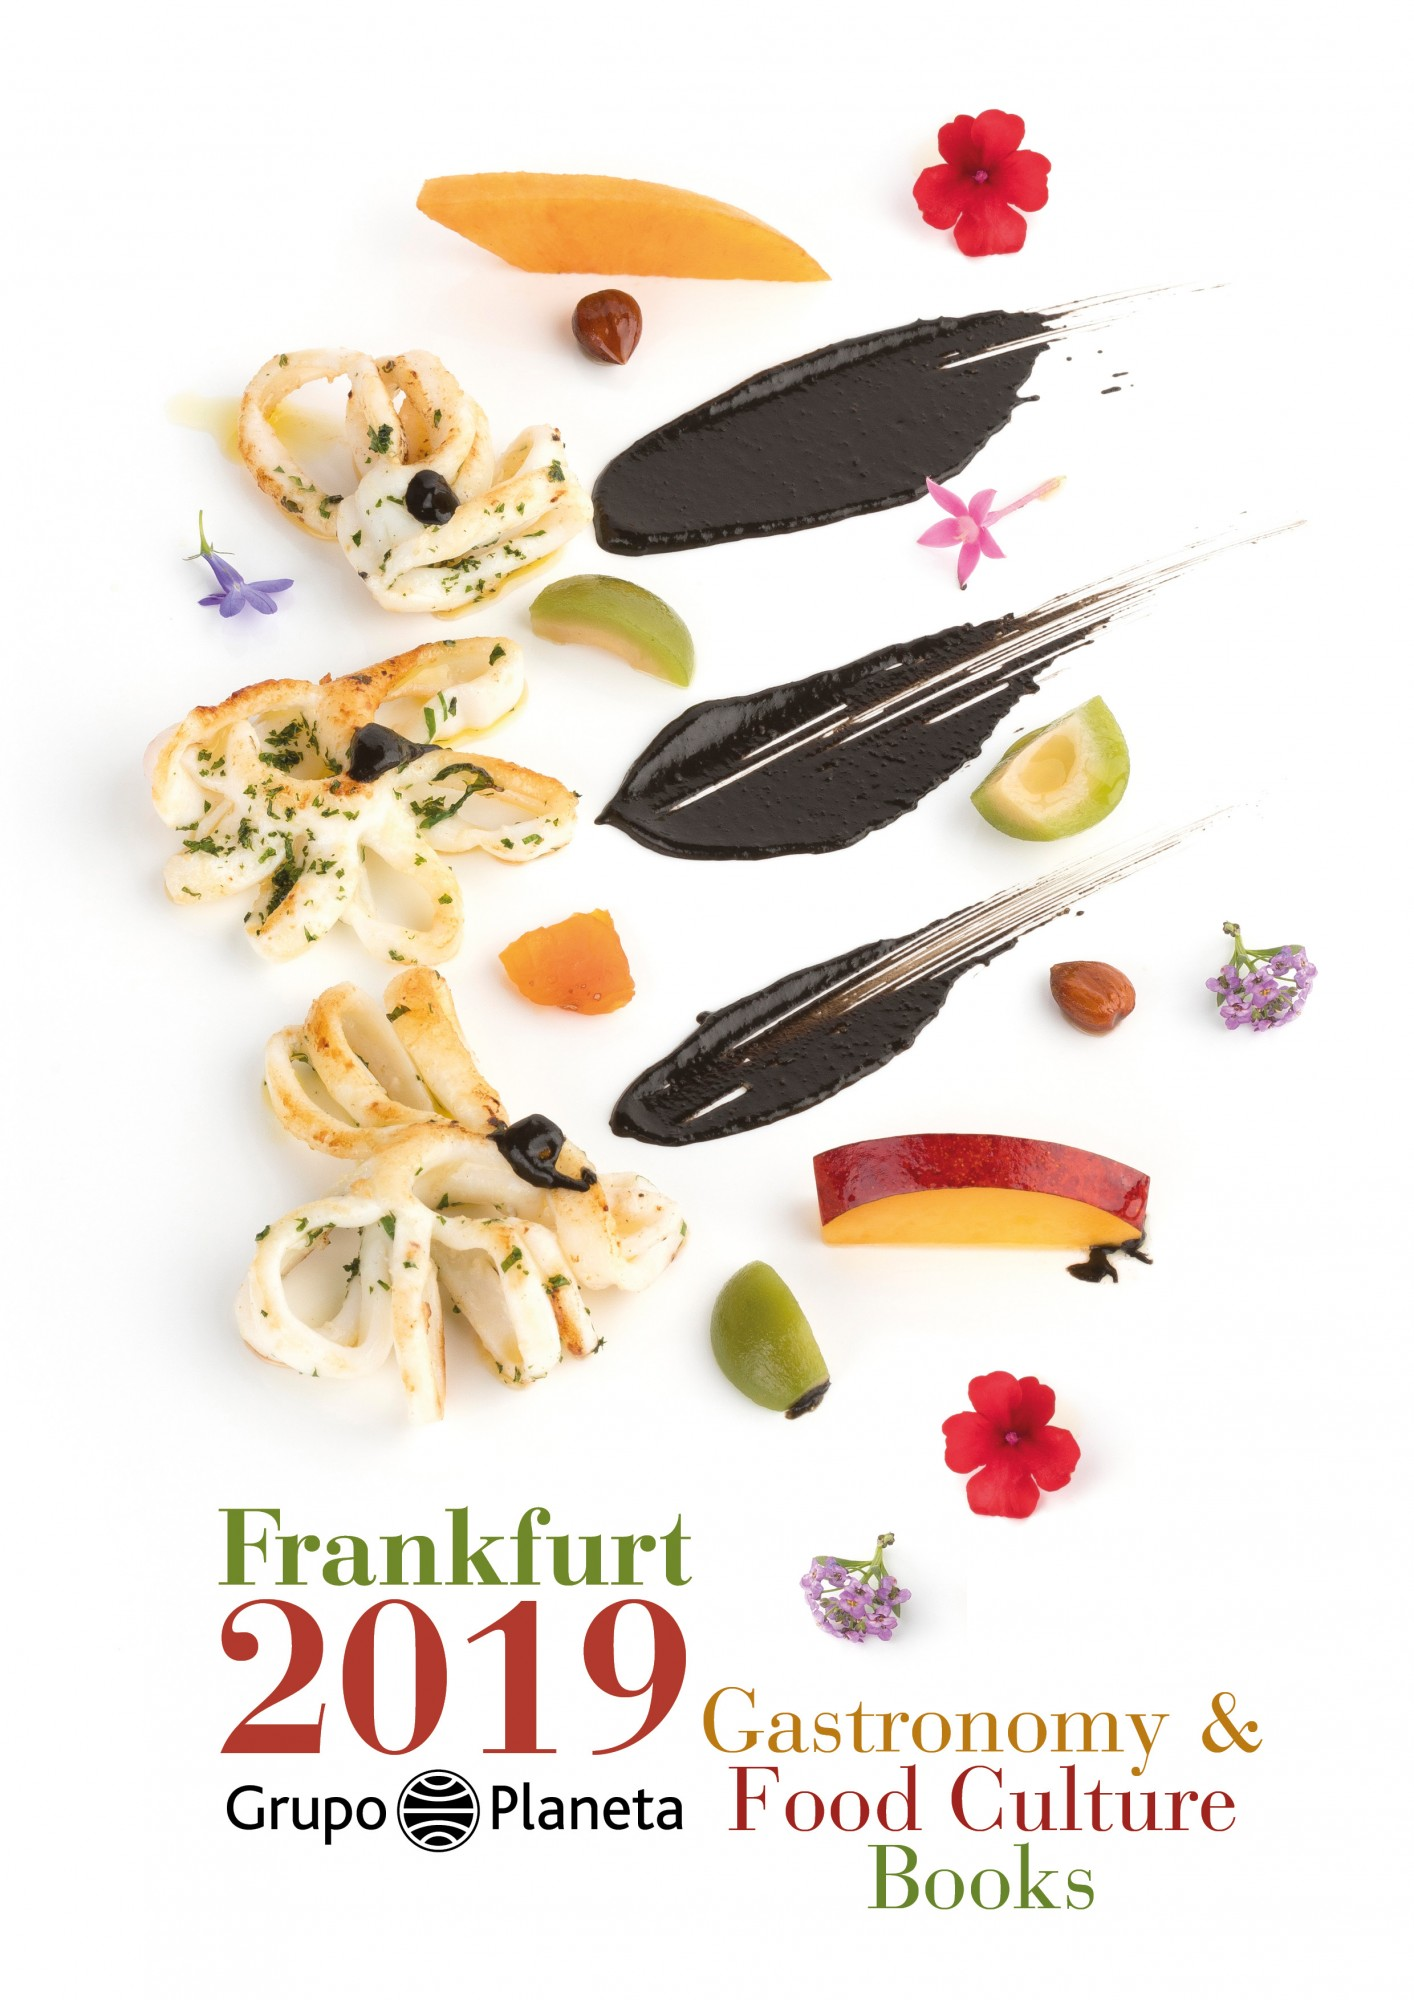 Frankfurt 2019 Gastronomy & Food Culture